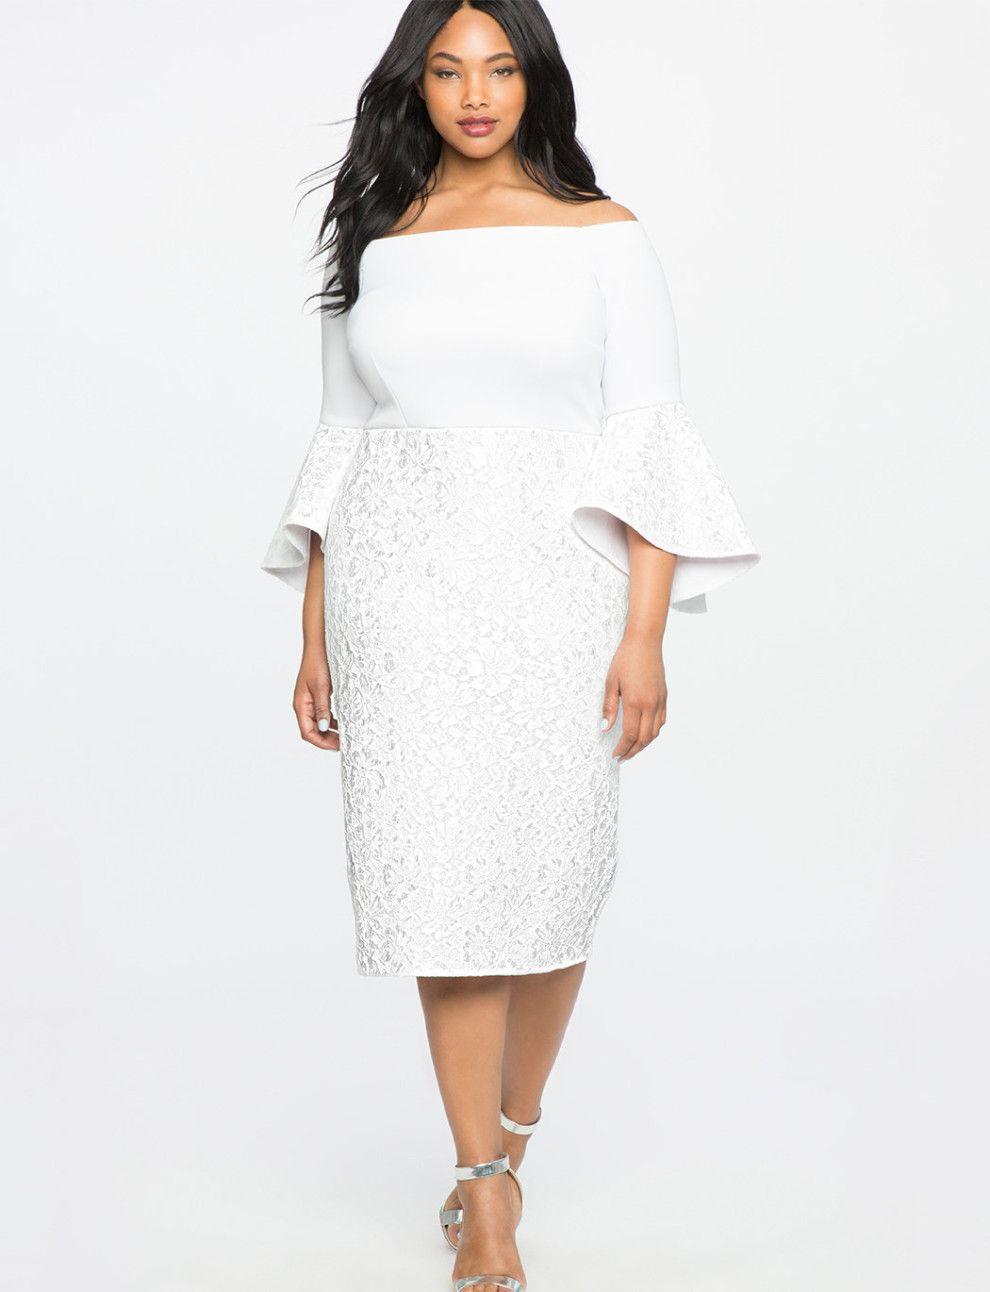 0c7d0c53af A modern off-the-shoulder dress to add a sophisticated grace with your  wedding-day glow.